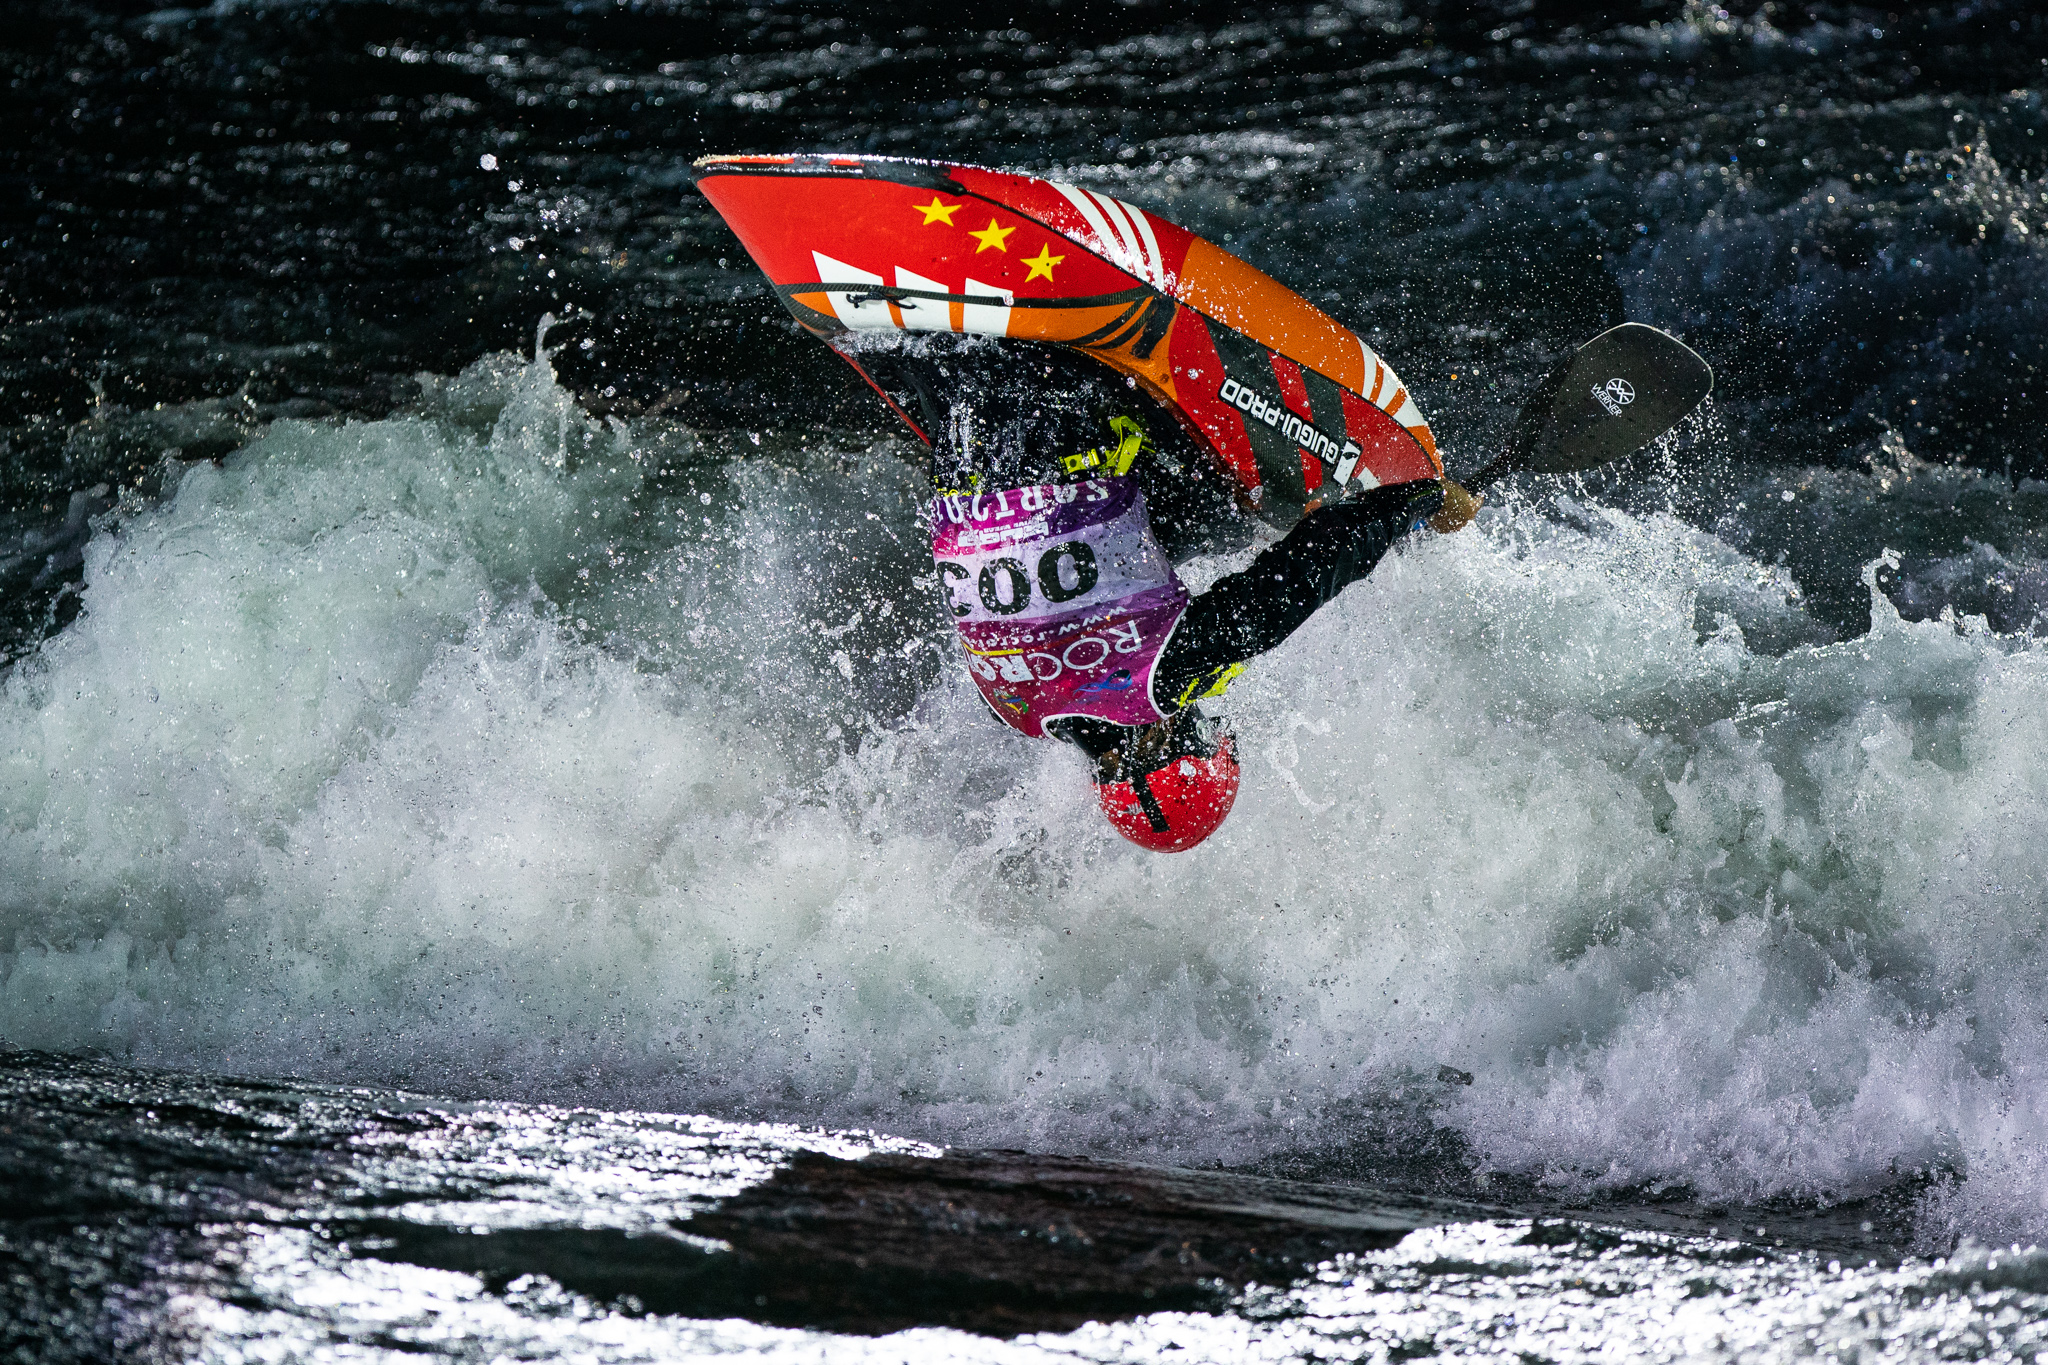 Steazy. Sebastien Devred (France) going huge and super smooth ©Peter Holcombe: kayaksession.com